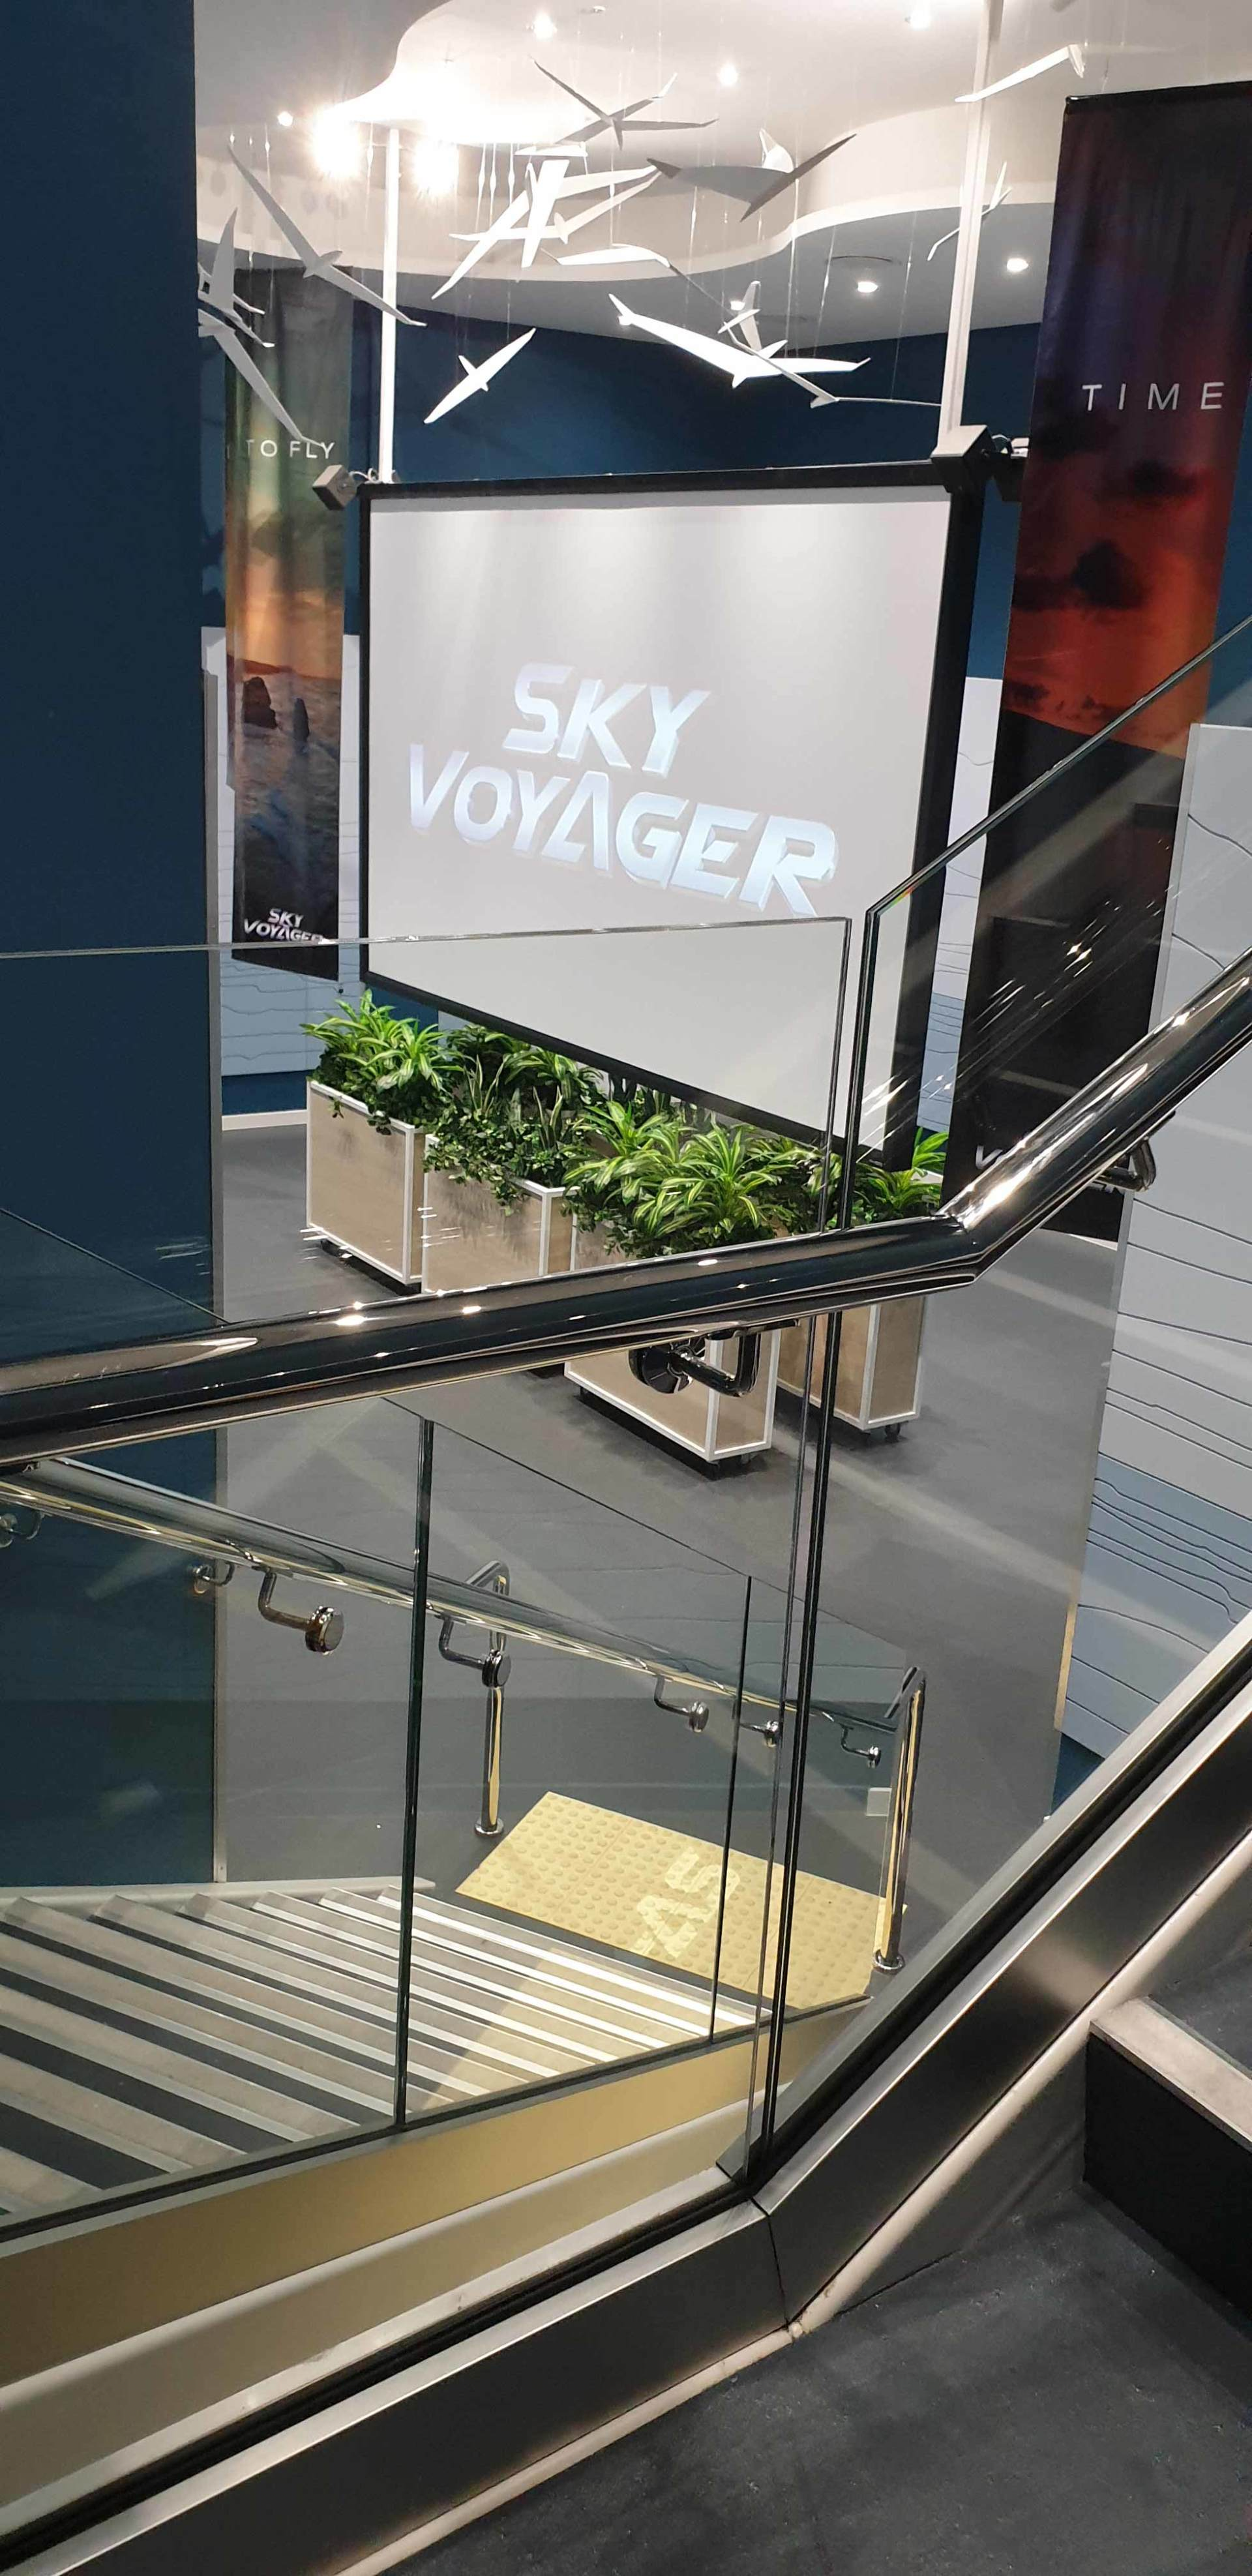 Sky of Voyager   Search your content